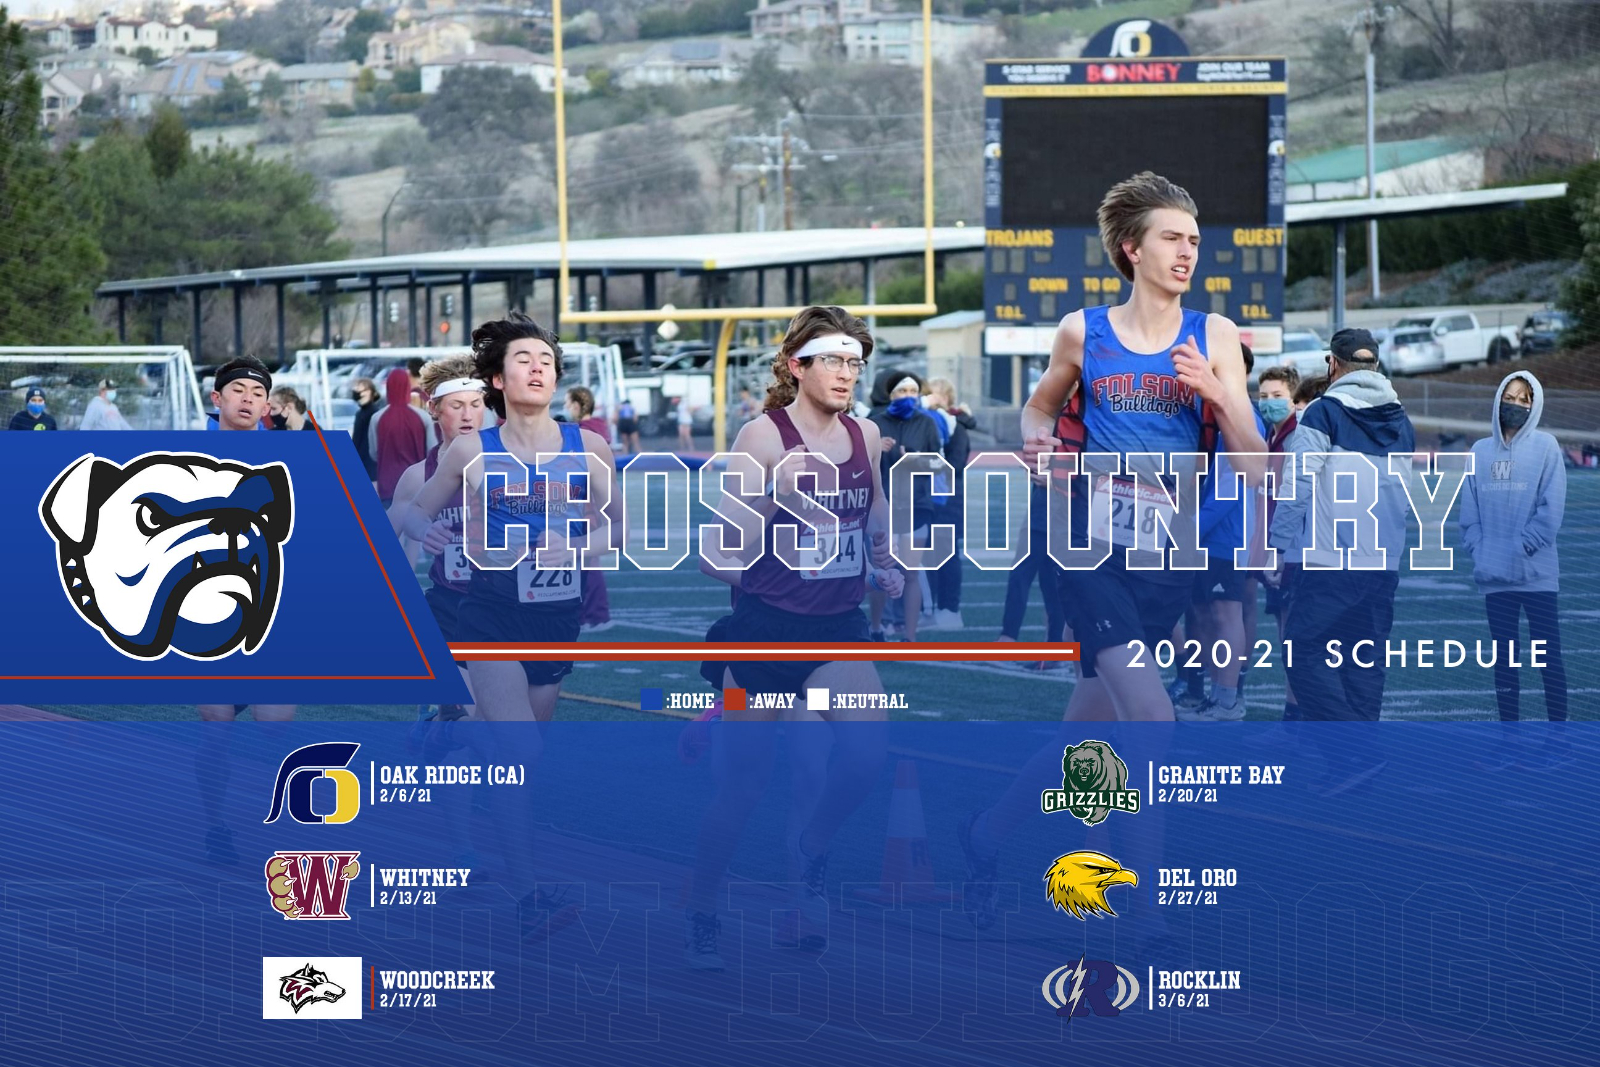 2020-21 Folsom HS Cross Country Competes Twice This Week and Secures the Top 3 Spots again